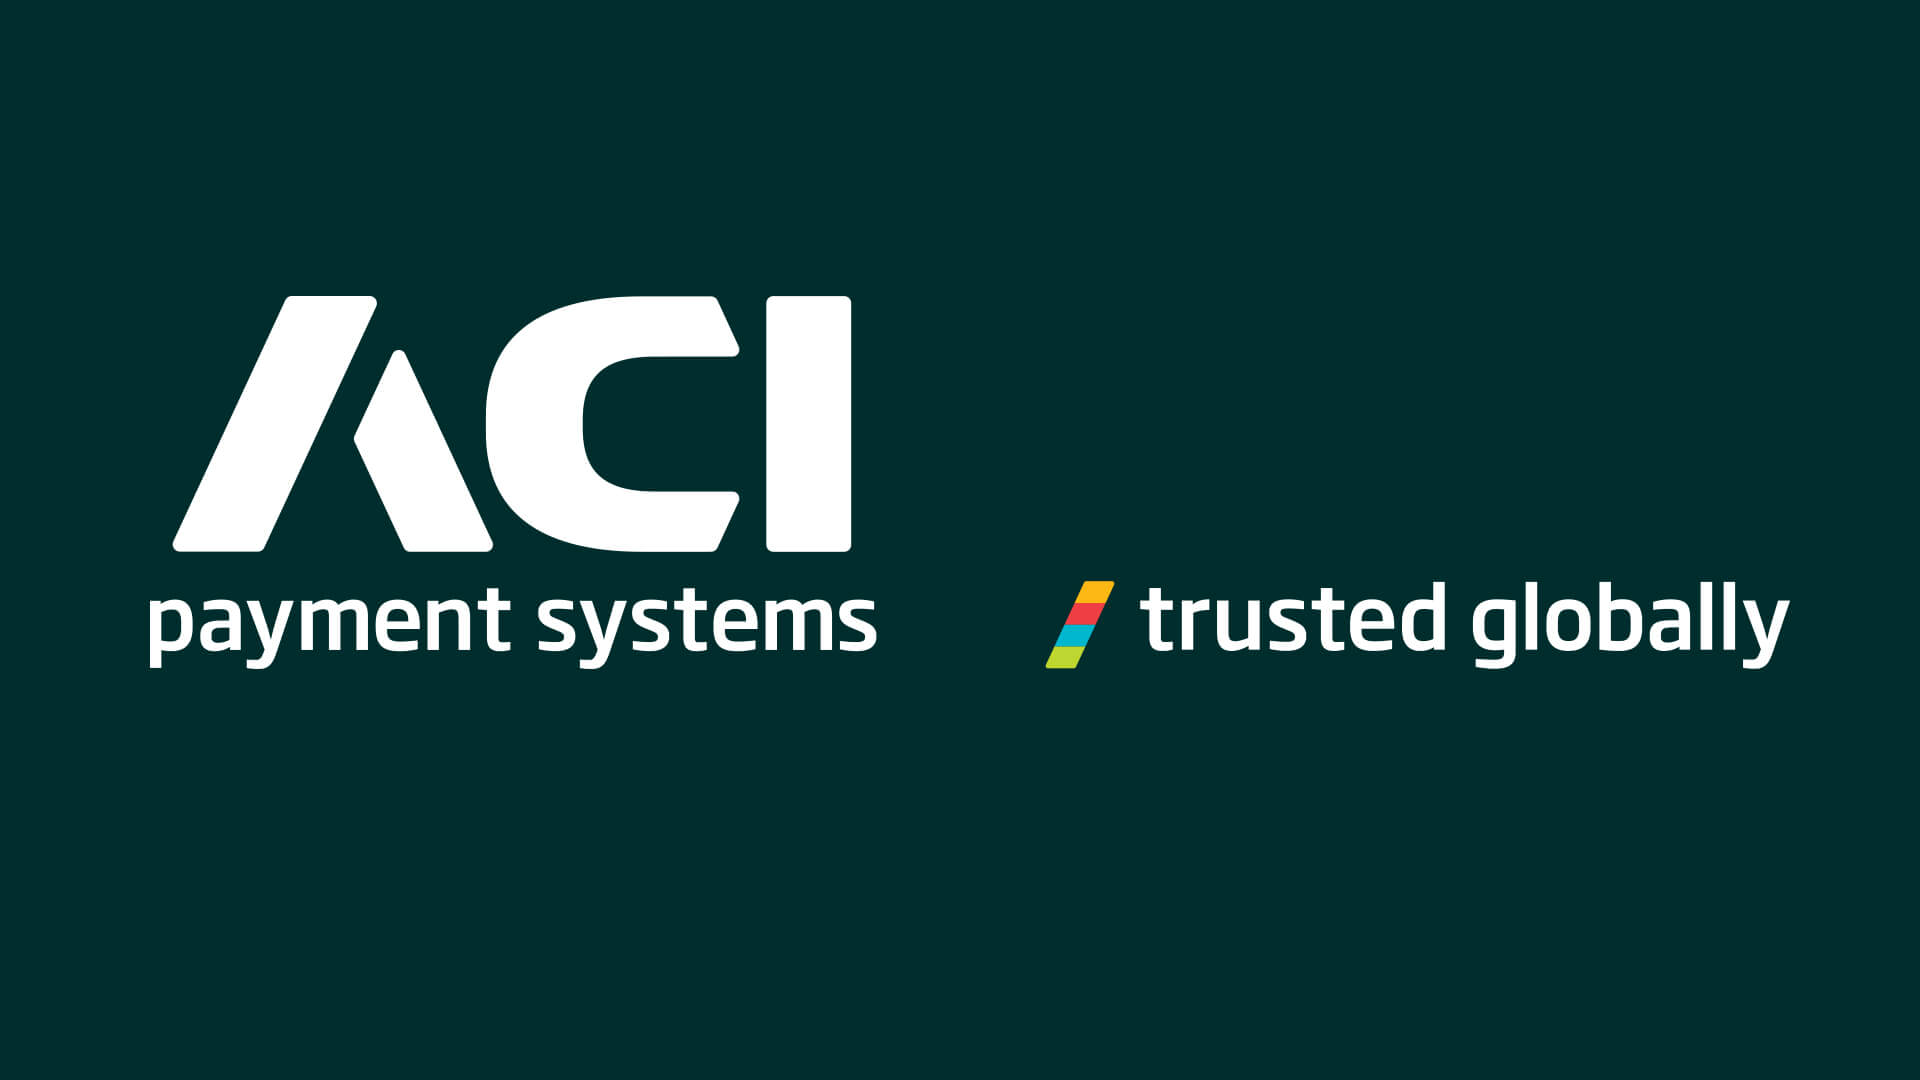 ACI payment systems brand identity messaging strapline postioning